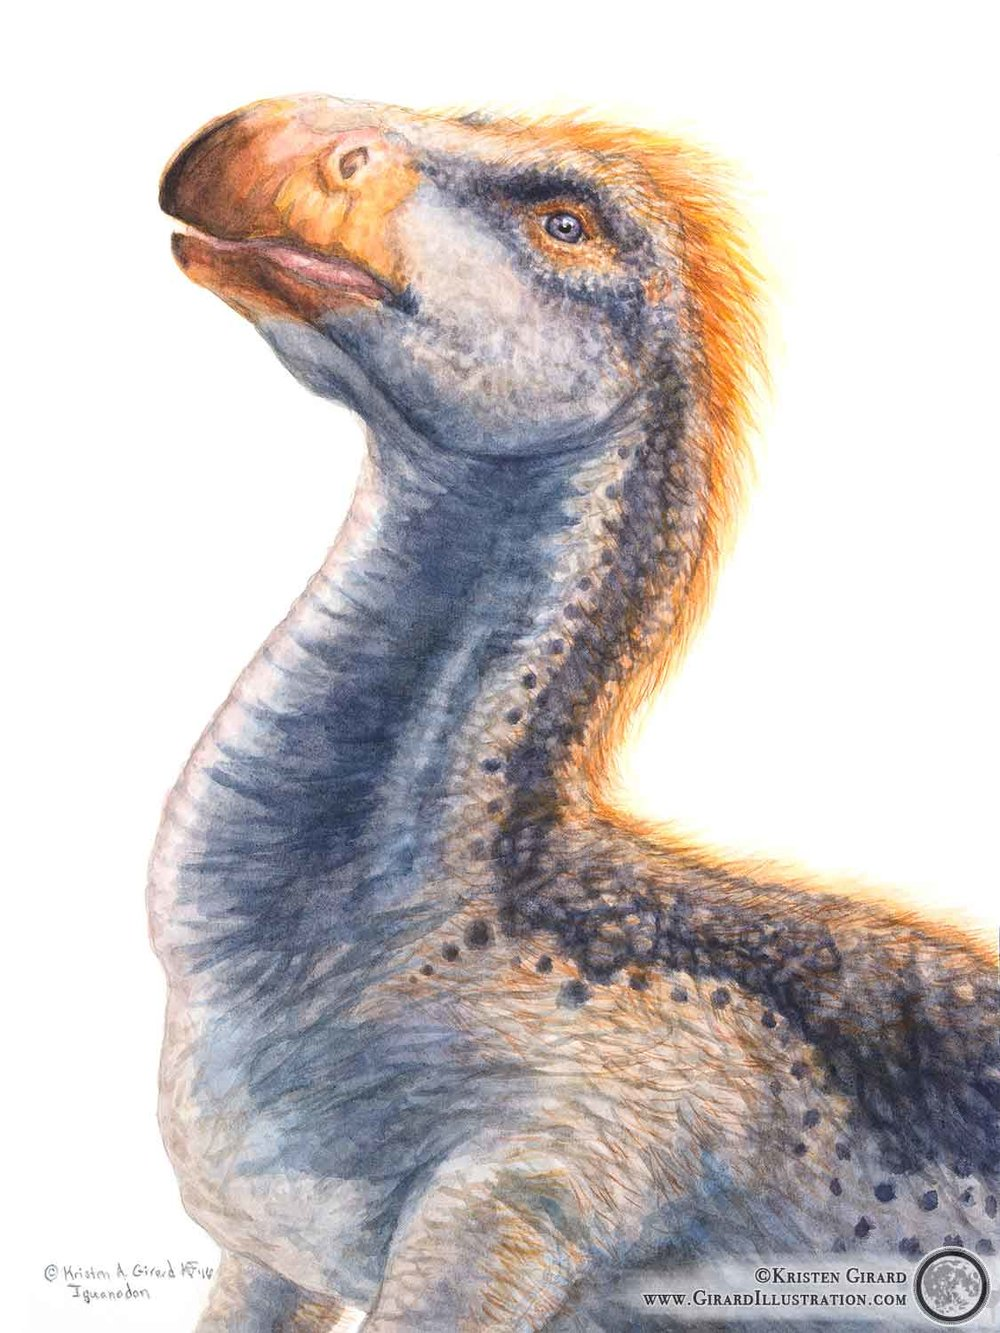 Watercolor illustration Kristen Girard painted of the herbivorous dinosaur  Iguanodon angelicus . Take a look at her collection of paleo art that features more dinosaurs by  clicking here.  Limited edition prints and other great finds are available in the Art Store,  click here to check it out .  Iguanodon angelicus © 2016 by Kristen Girard.